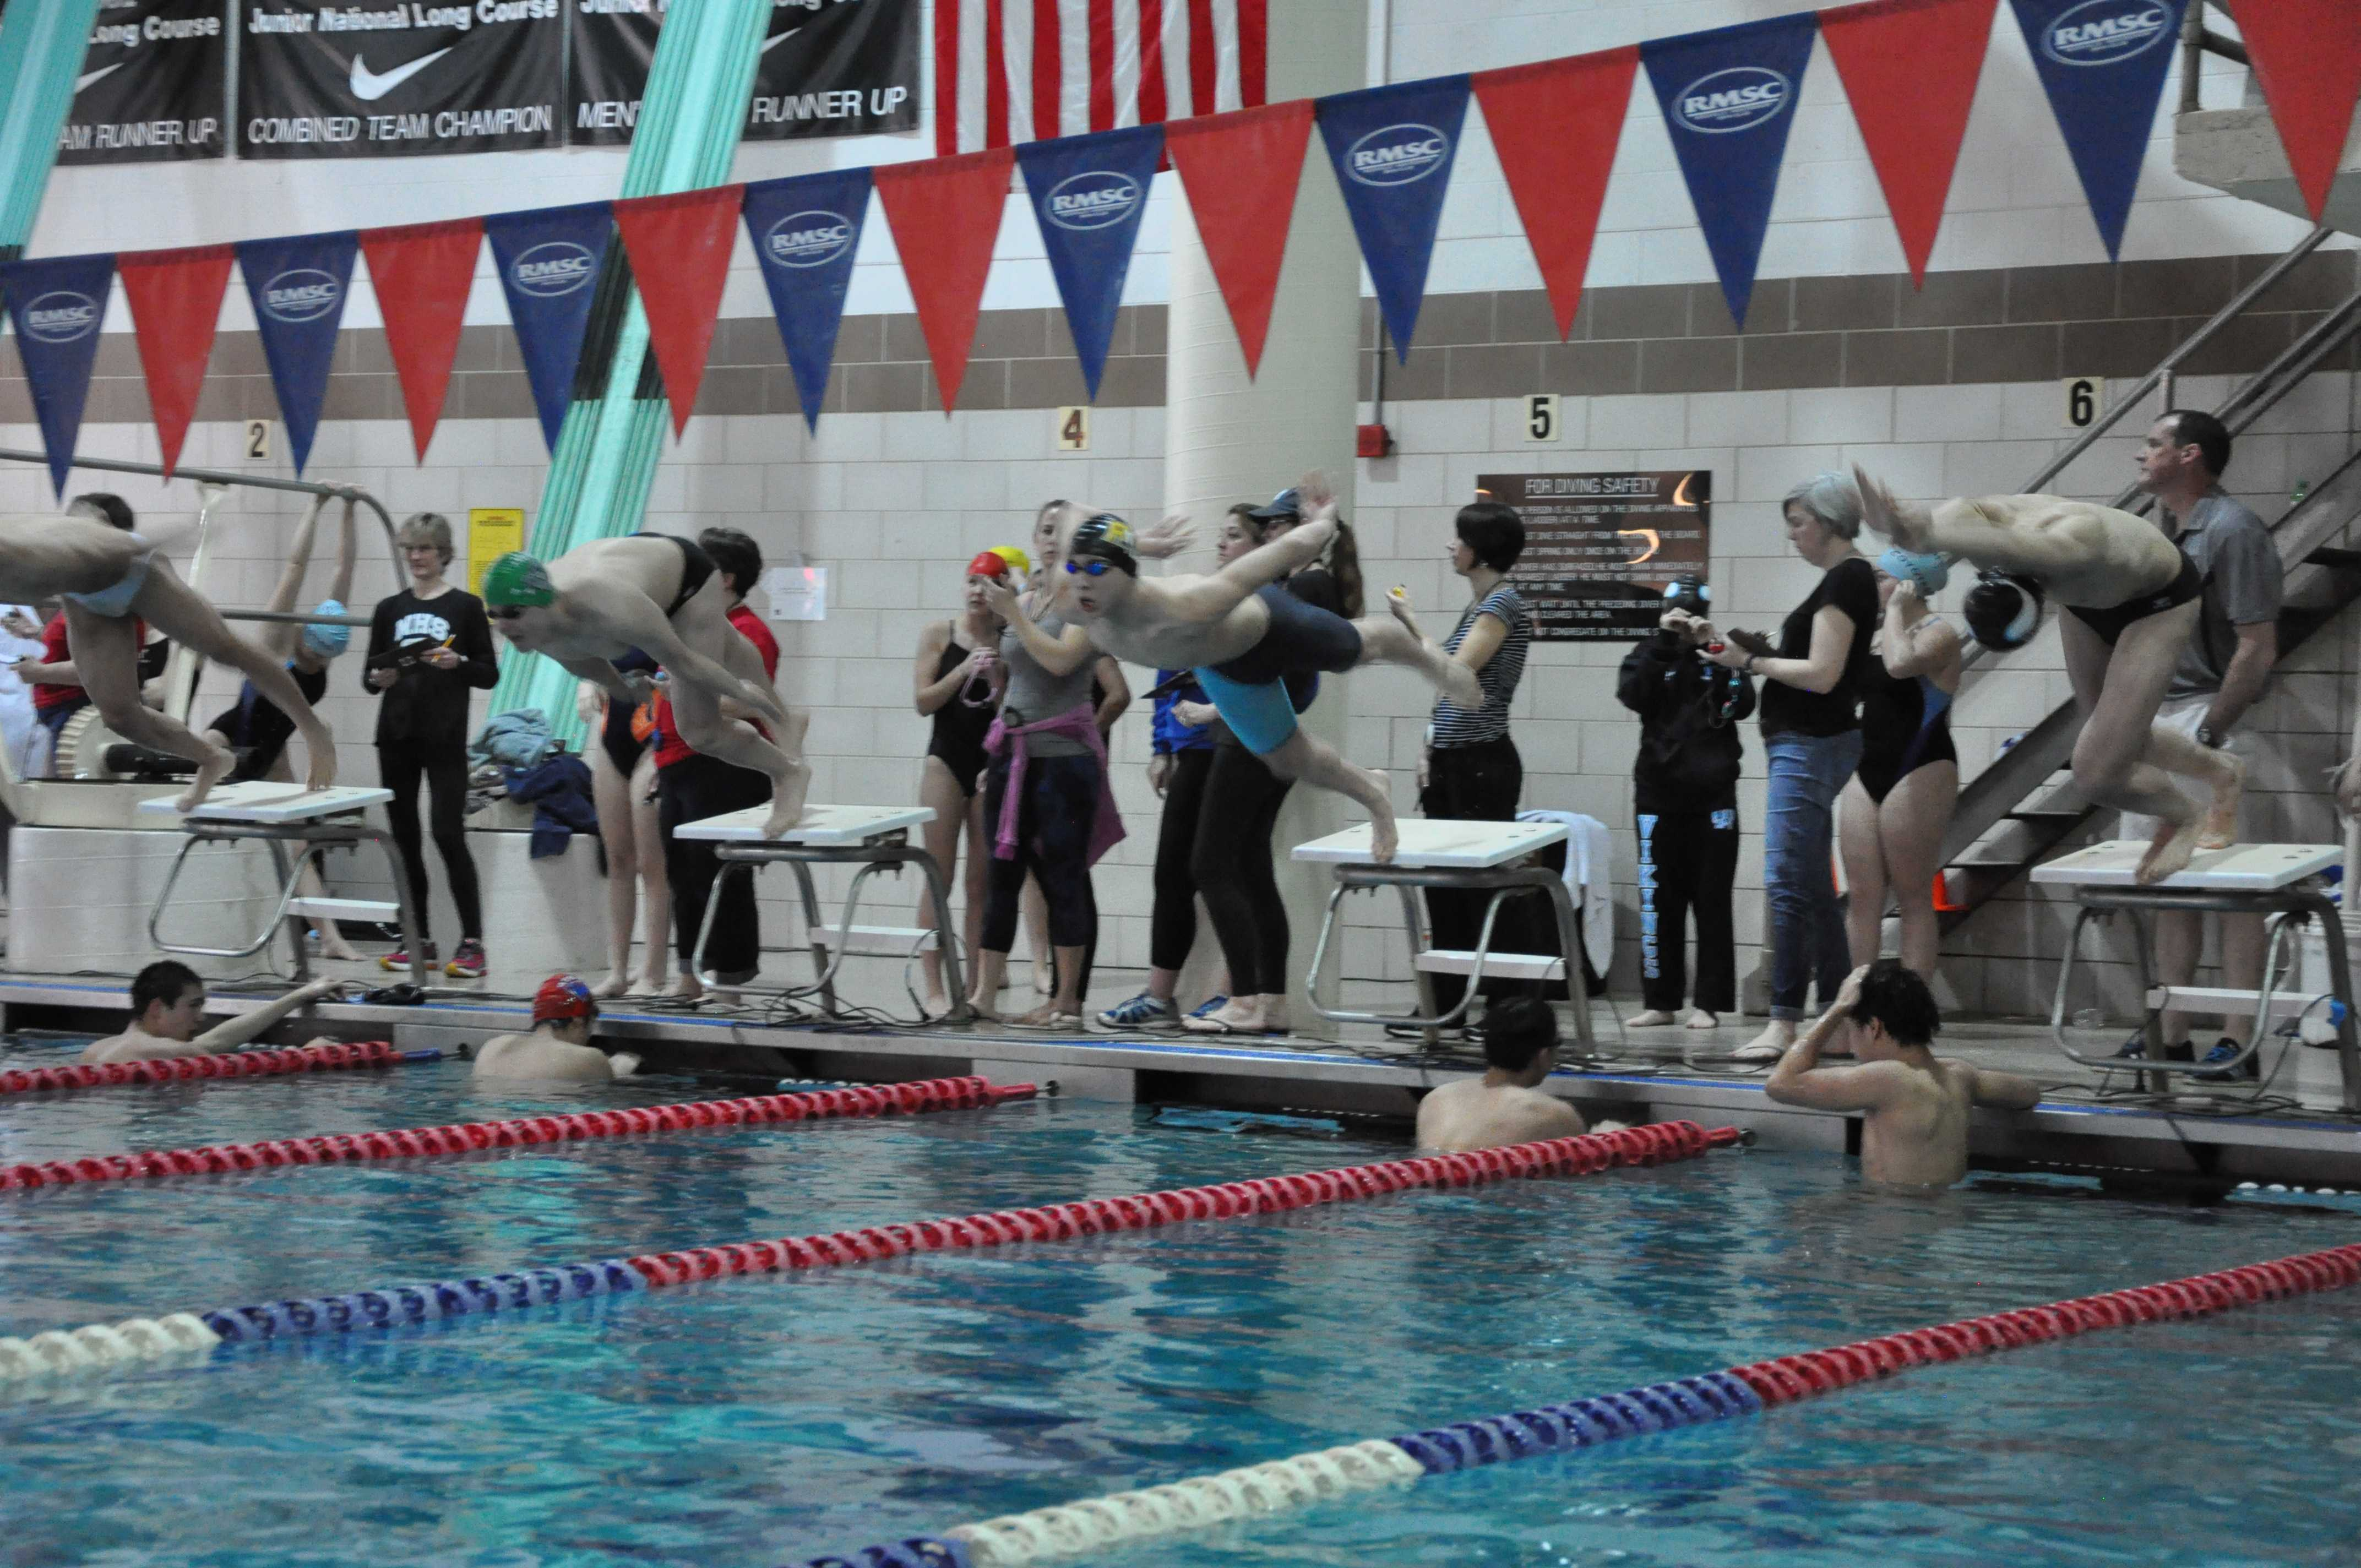 RM boys swim & dive team preparing to take first place at state championships meet